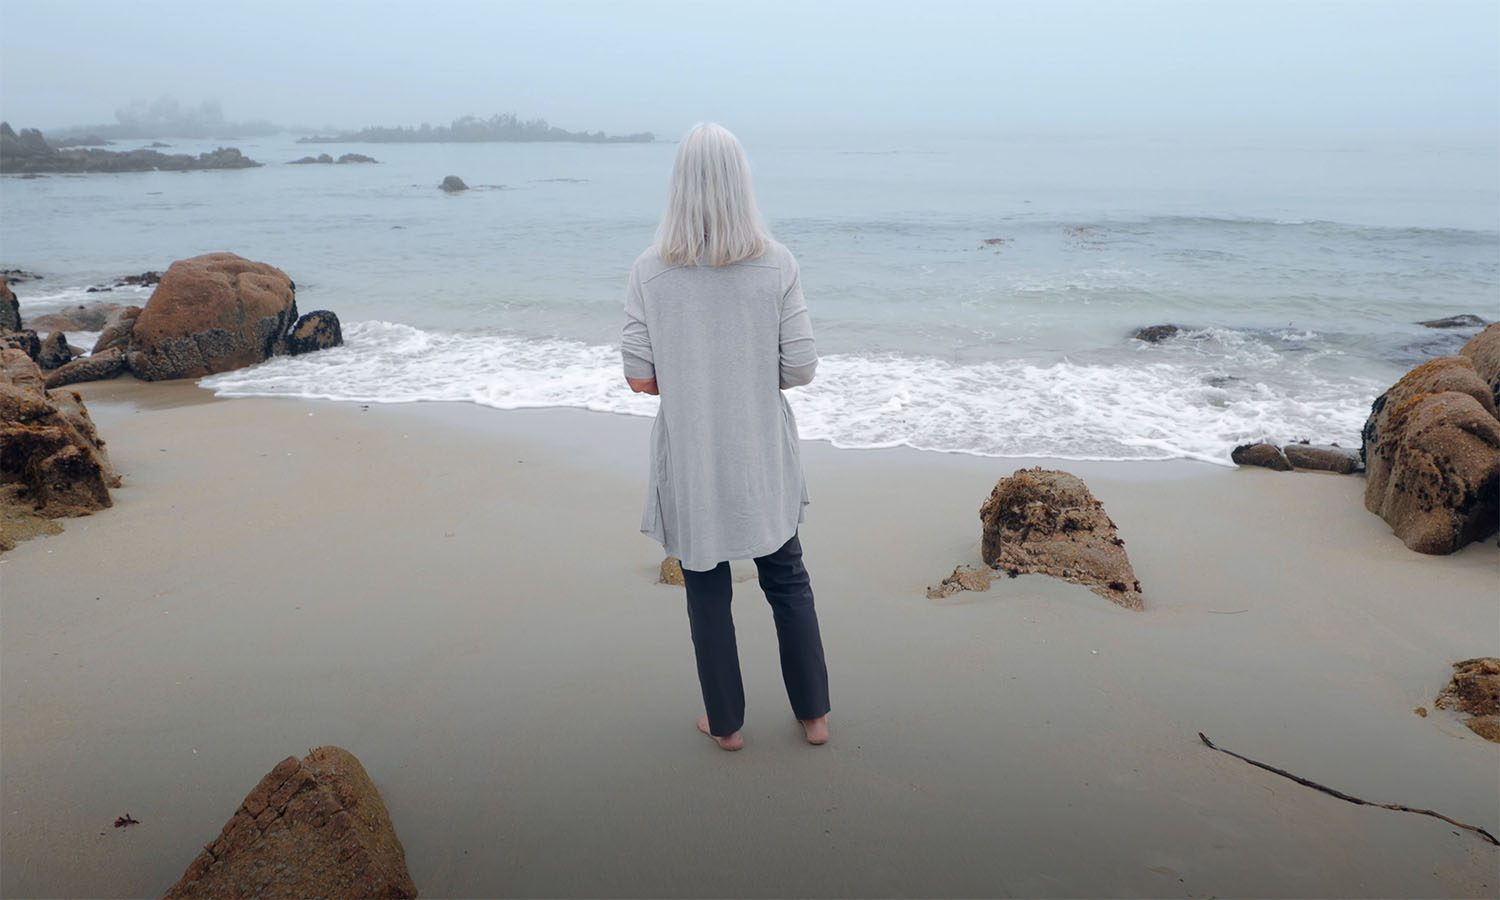 Julie Packard on a beach, staring out into the water